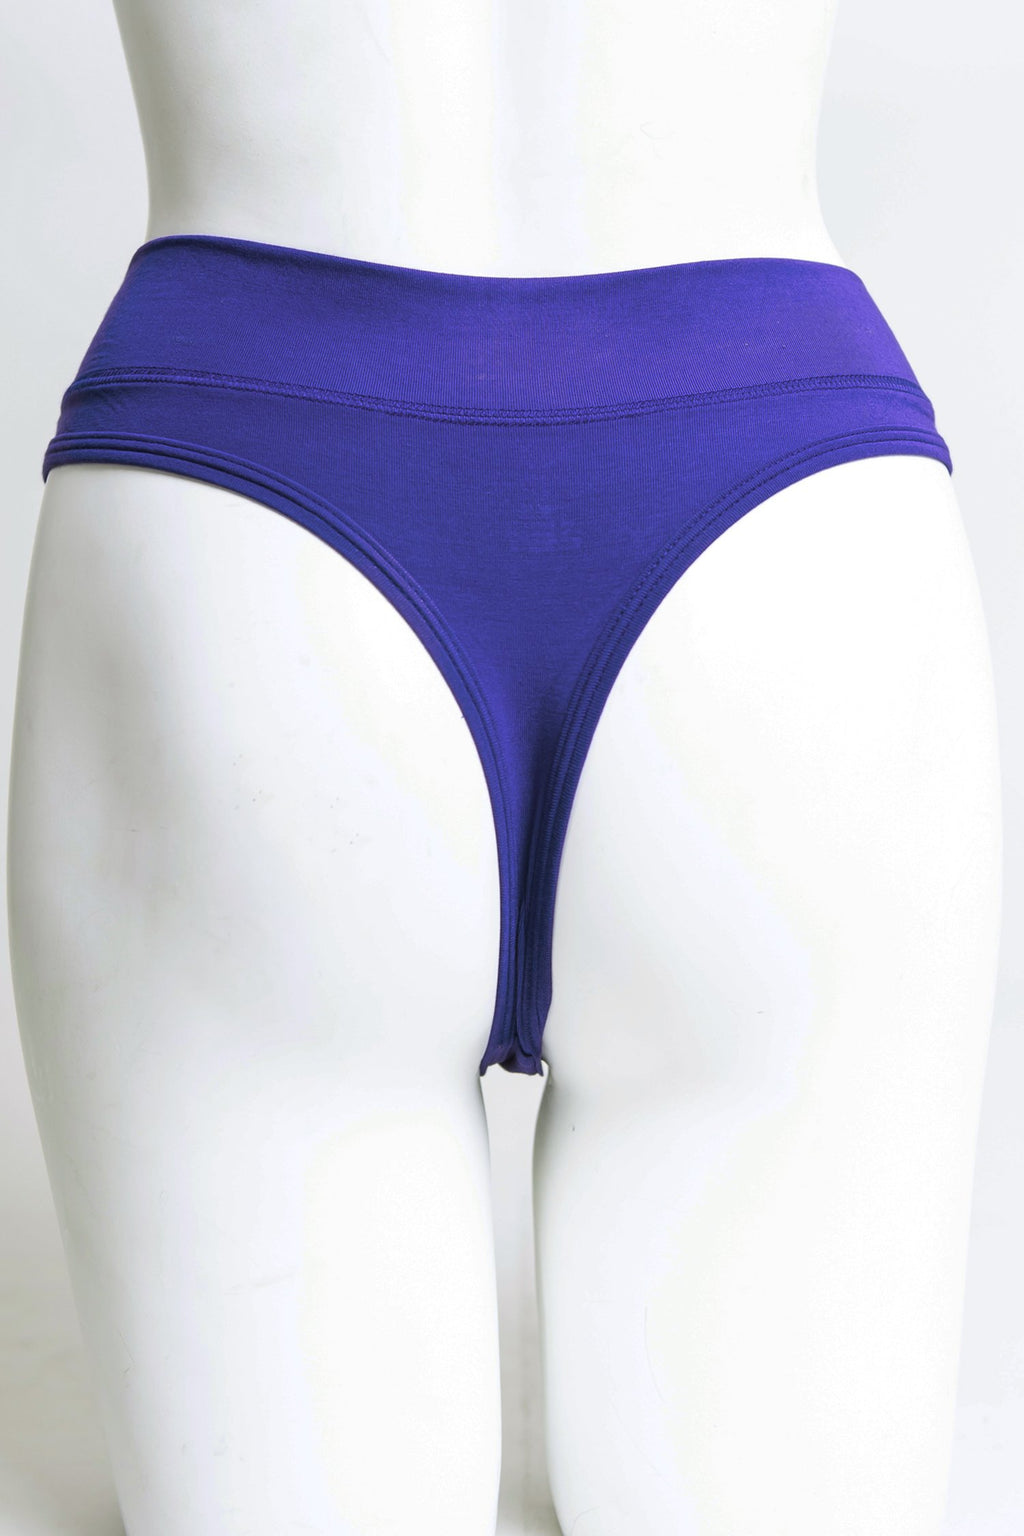 La Thong, Violet, Bamboo - Blue Sky Clothing Co